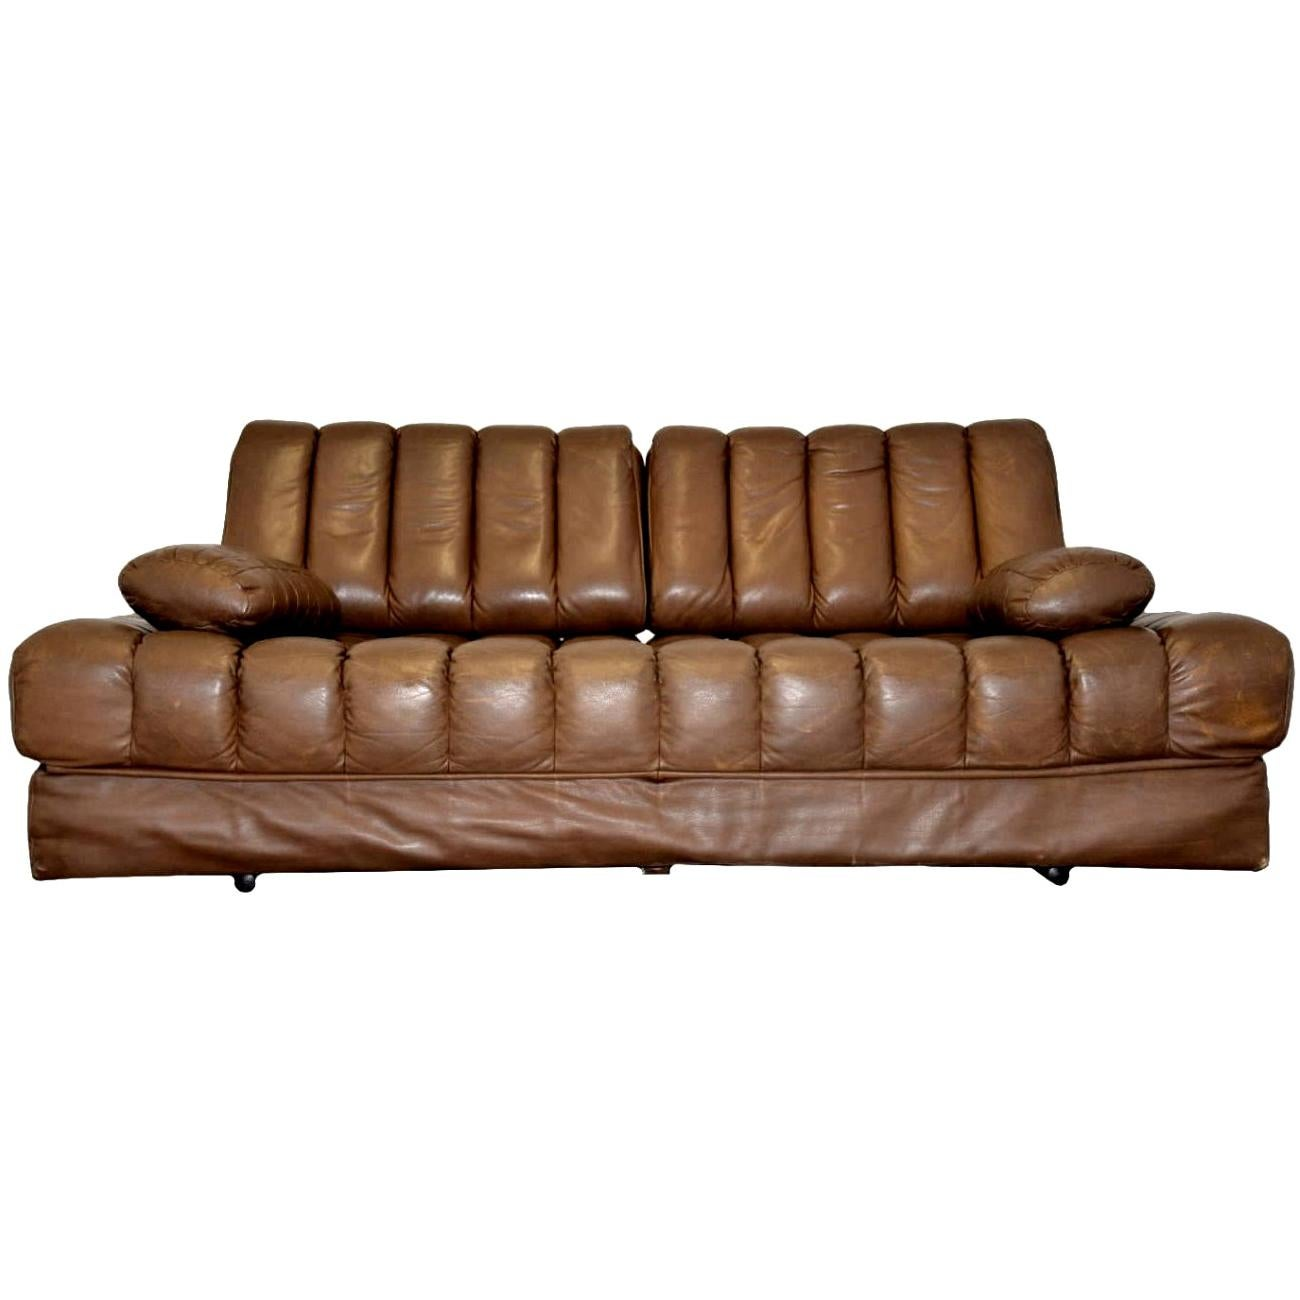 Vintage De Sede DS 85 Leather Sofa, Daybed and Loveseat, Switzerland, 1960s